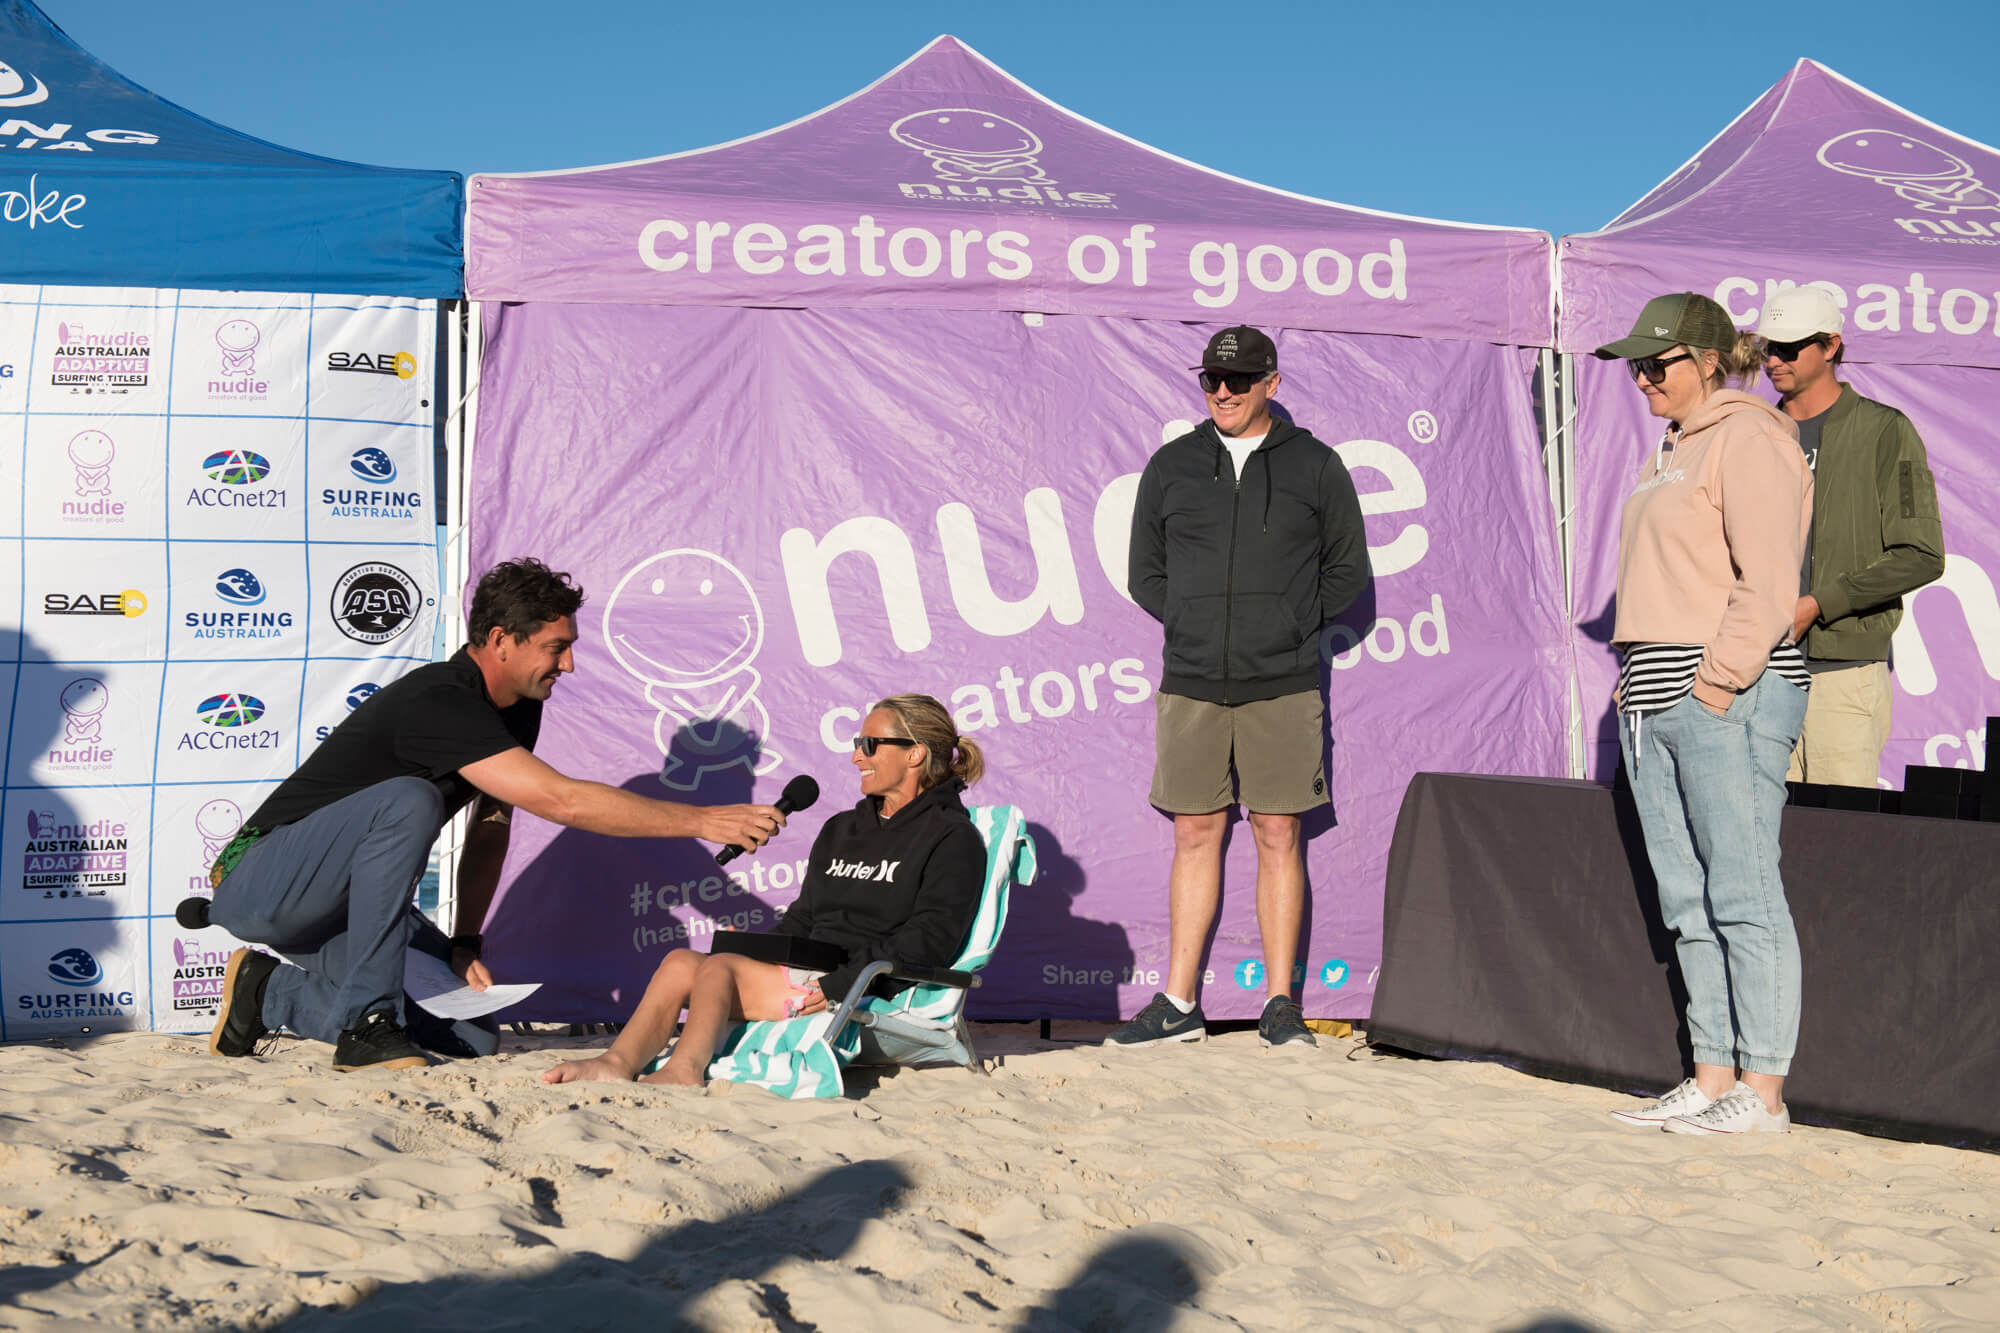 Sam being interviewed after Surfing Australia event